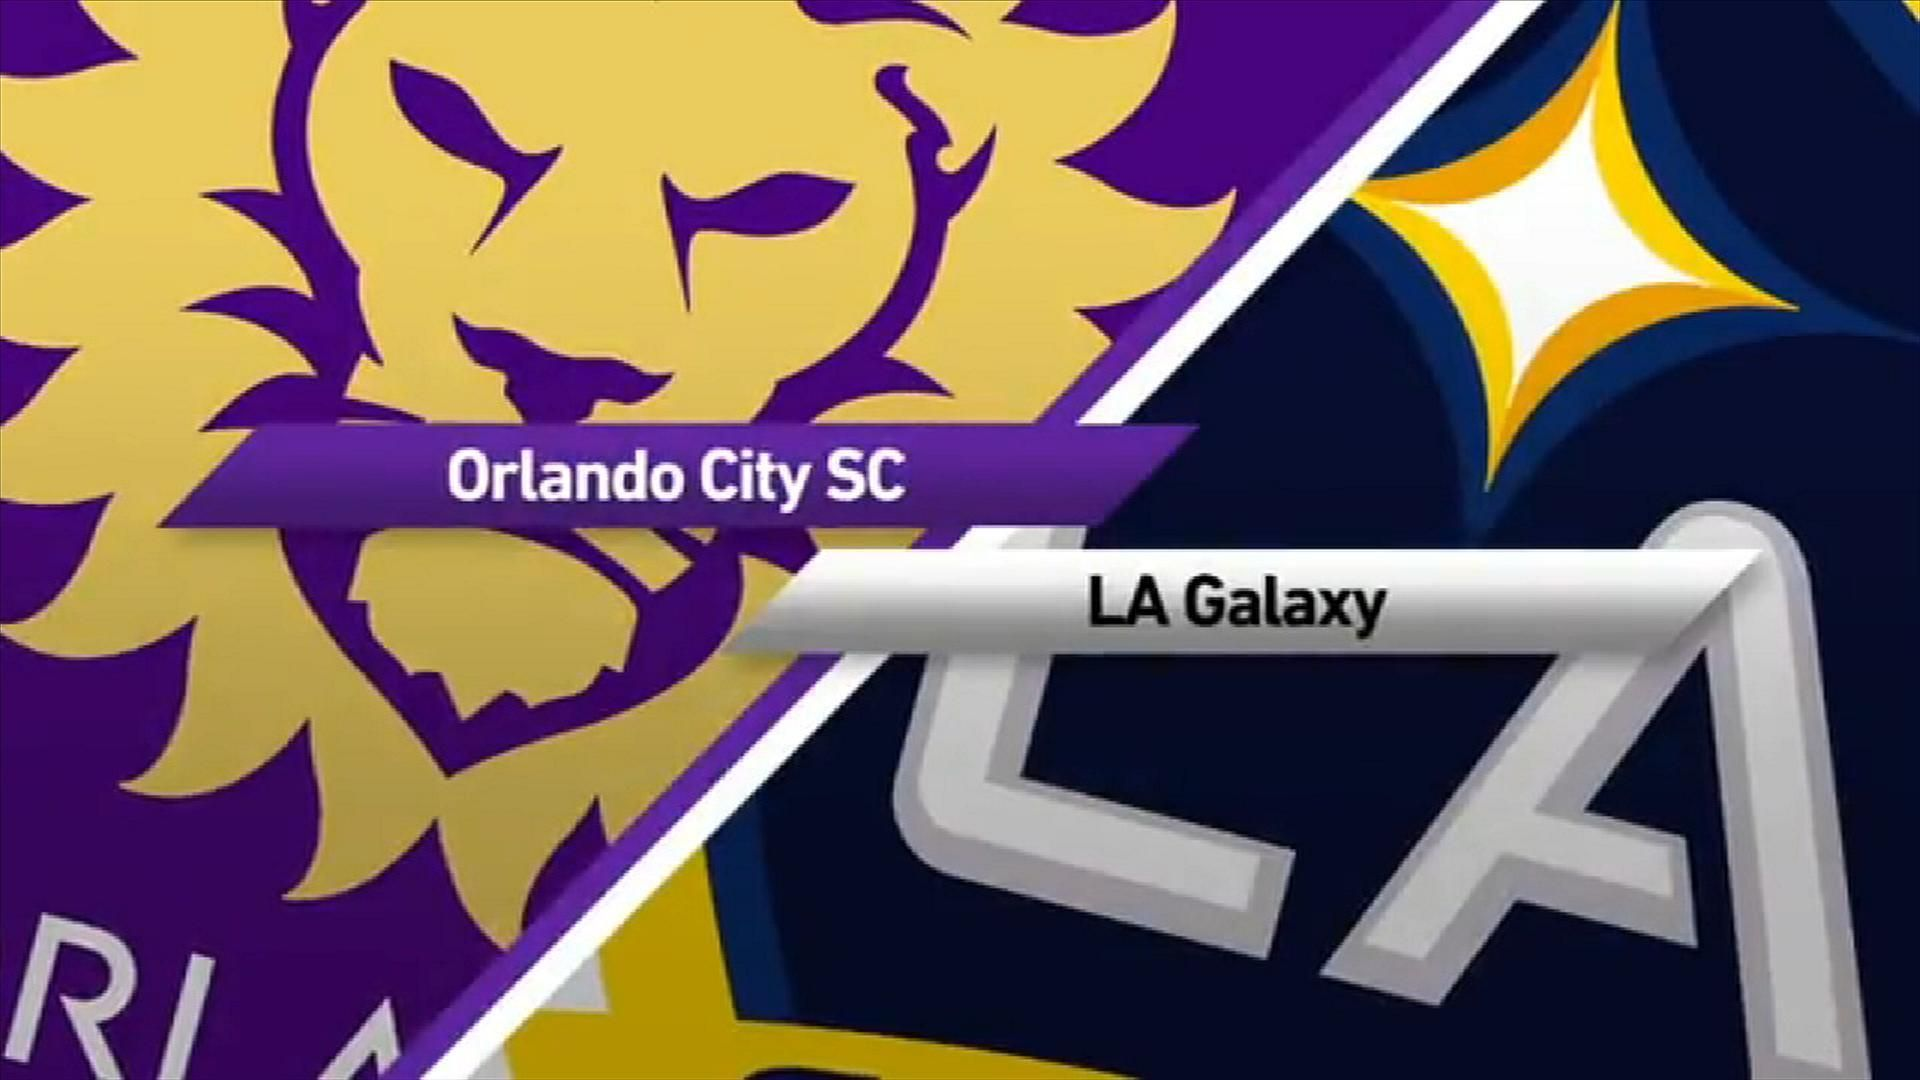 Orlando City 2-1 LA Galaxy: Larin leads Lions - Via MLS